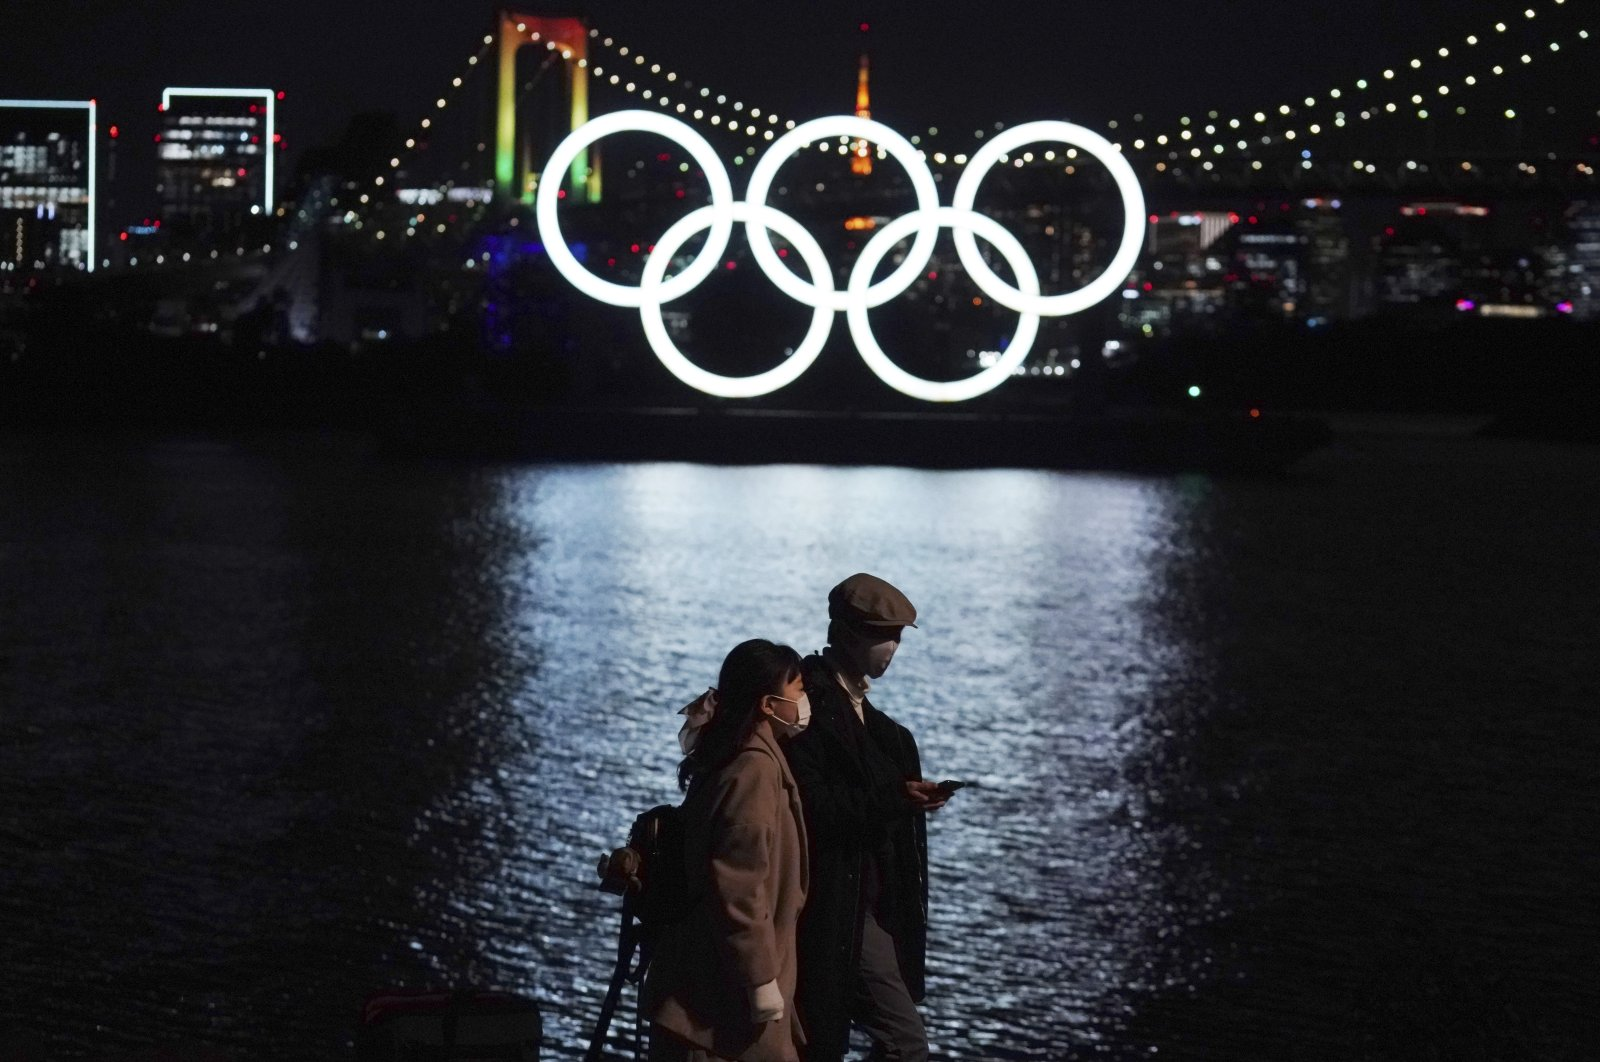 A man and a woman walk past the Olympic rings floating in the water, in Tokyo, Japan, Dec. 1, 2020. (AP PHOTO)